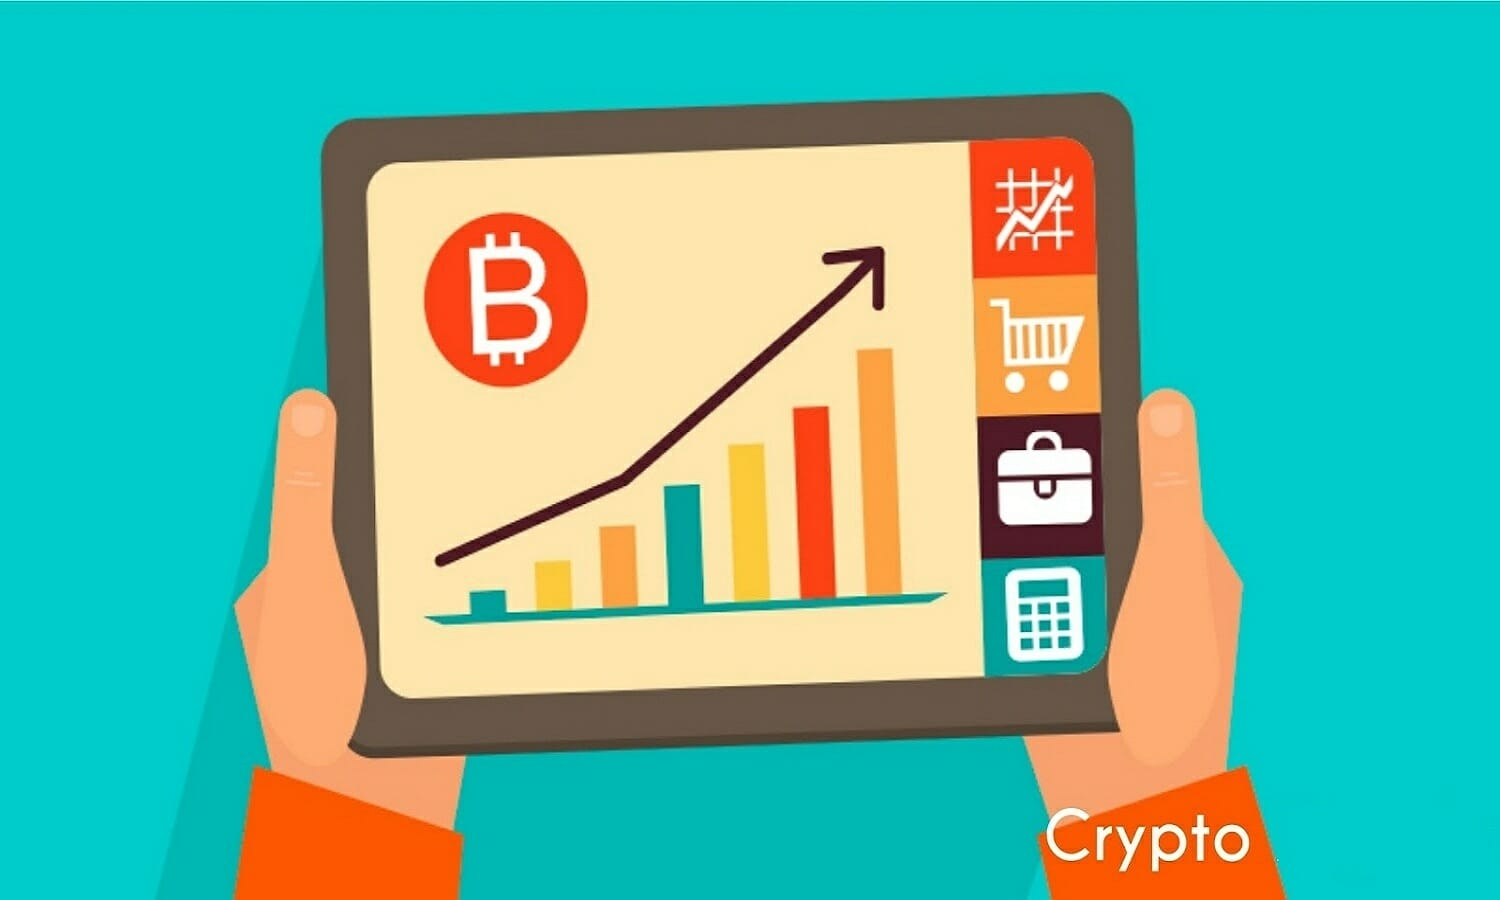 Tips for Finding the Best Cryptocurrency Trading Platform